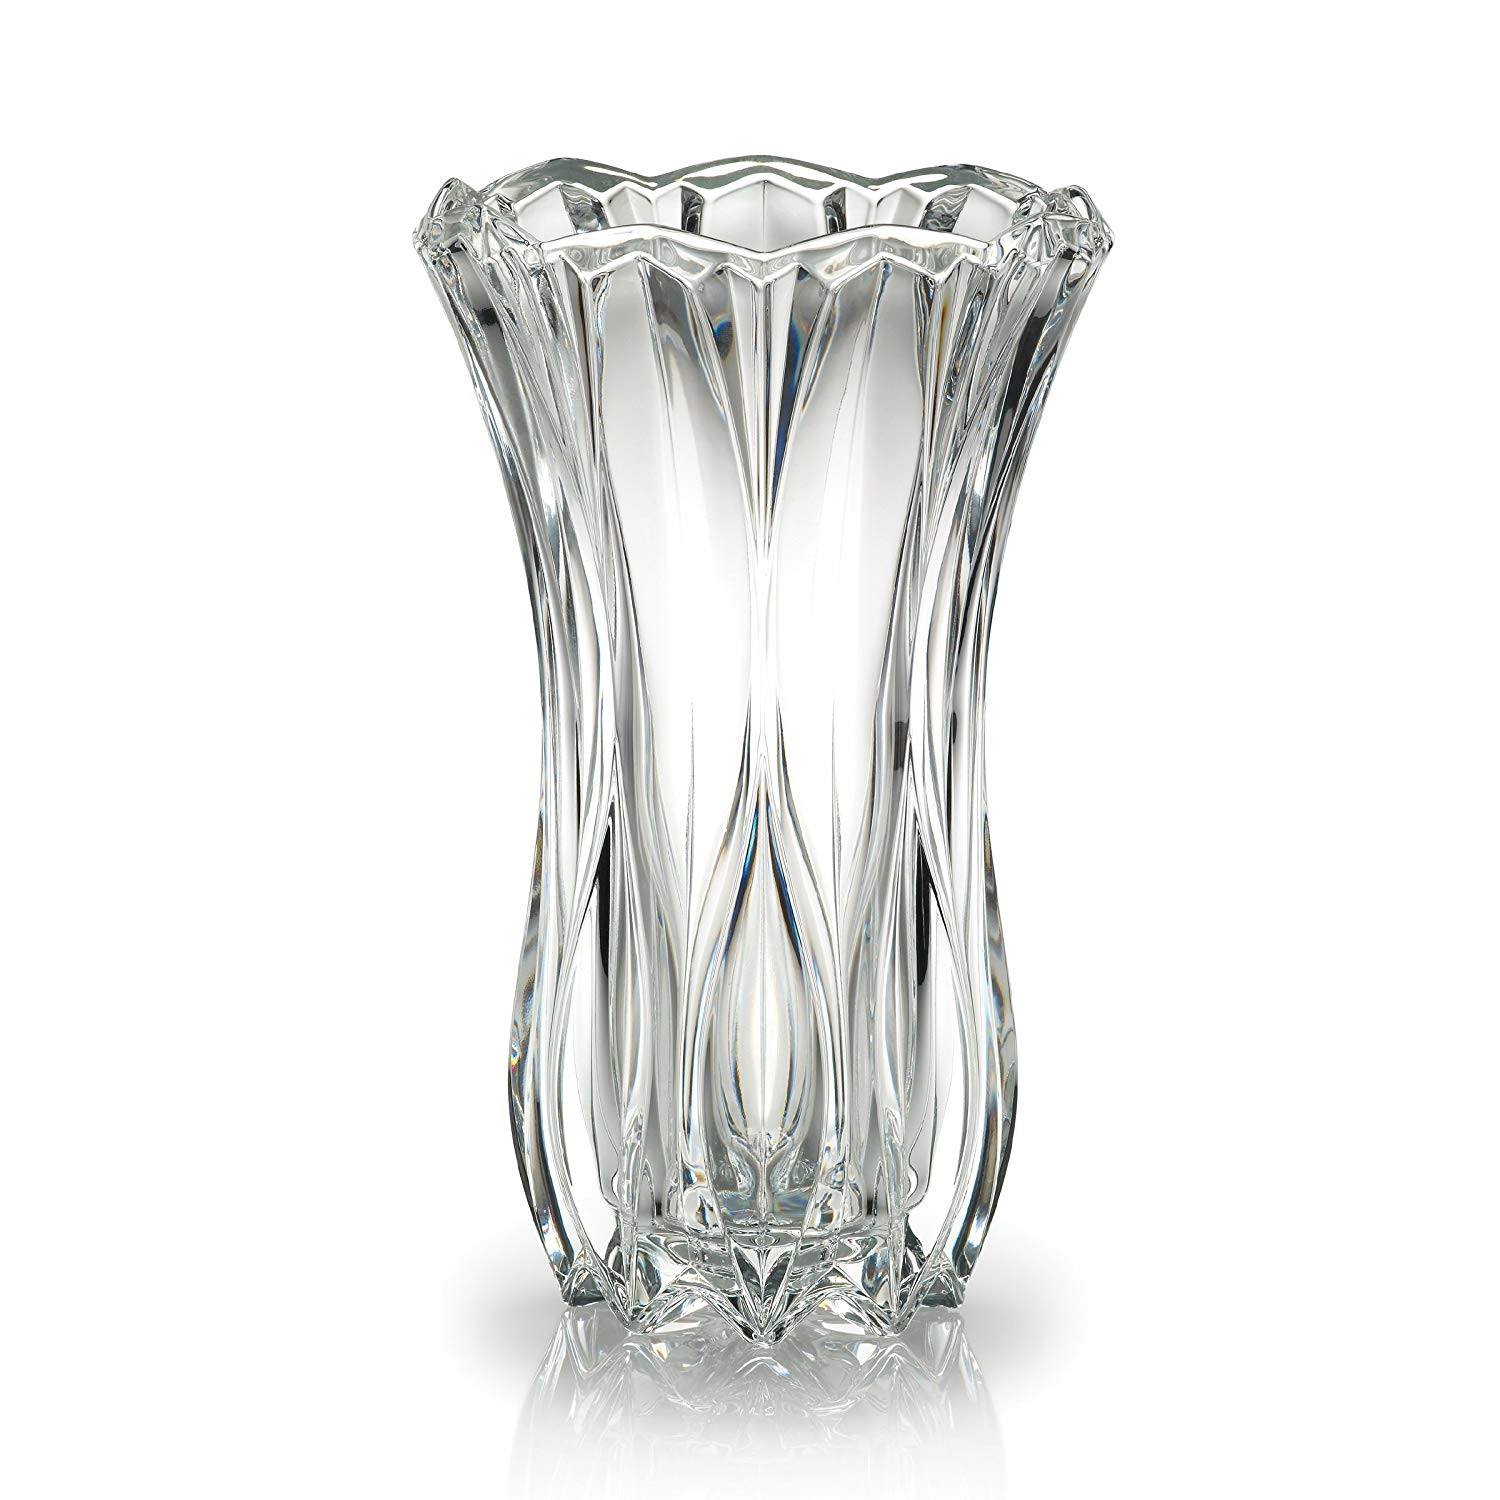 nachtmann art deco vase of amazon com celebrations by mikasa blossom crystal vase 12 inch for amazon com celebrations by mikasa blossom crystal vase 12 inch home kitchen